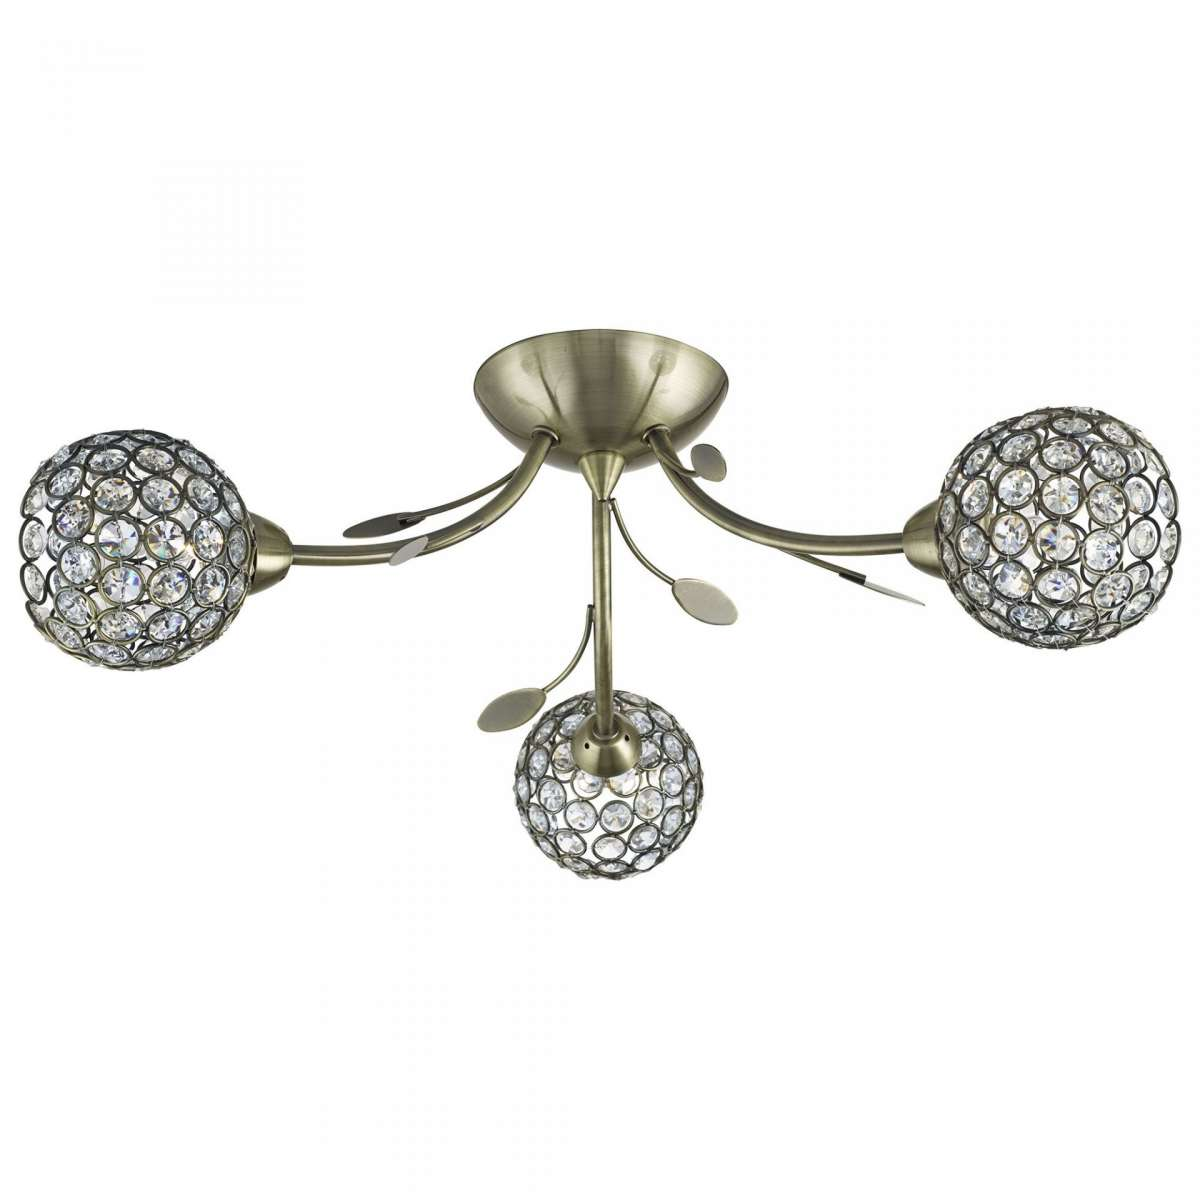 Bellis Ii 3 Light Ceiling Antique Brass Semi-Flush